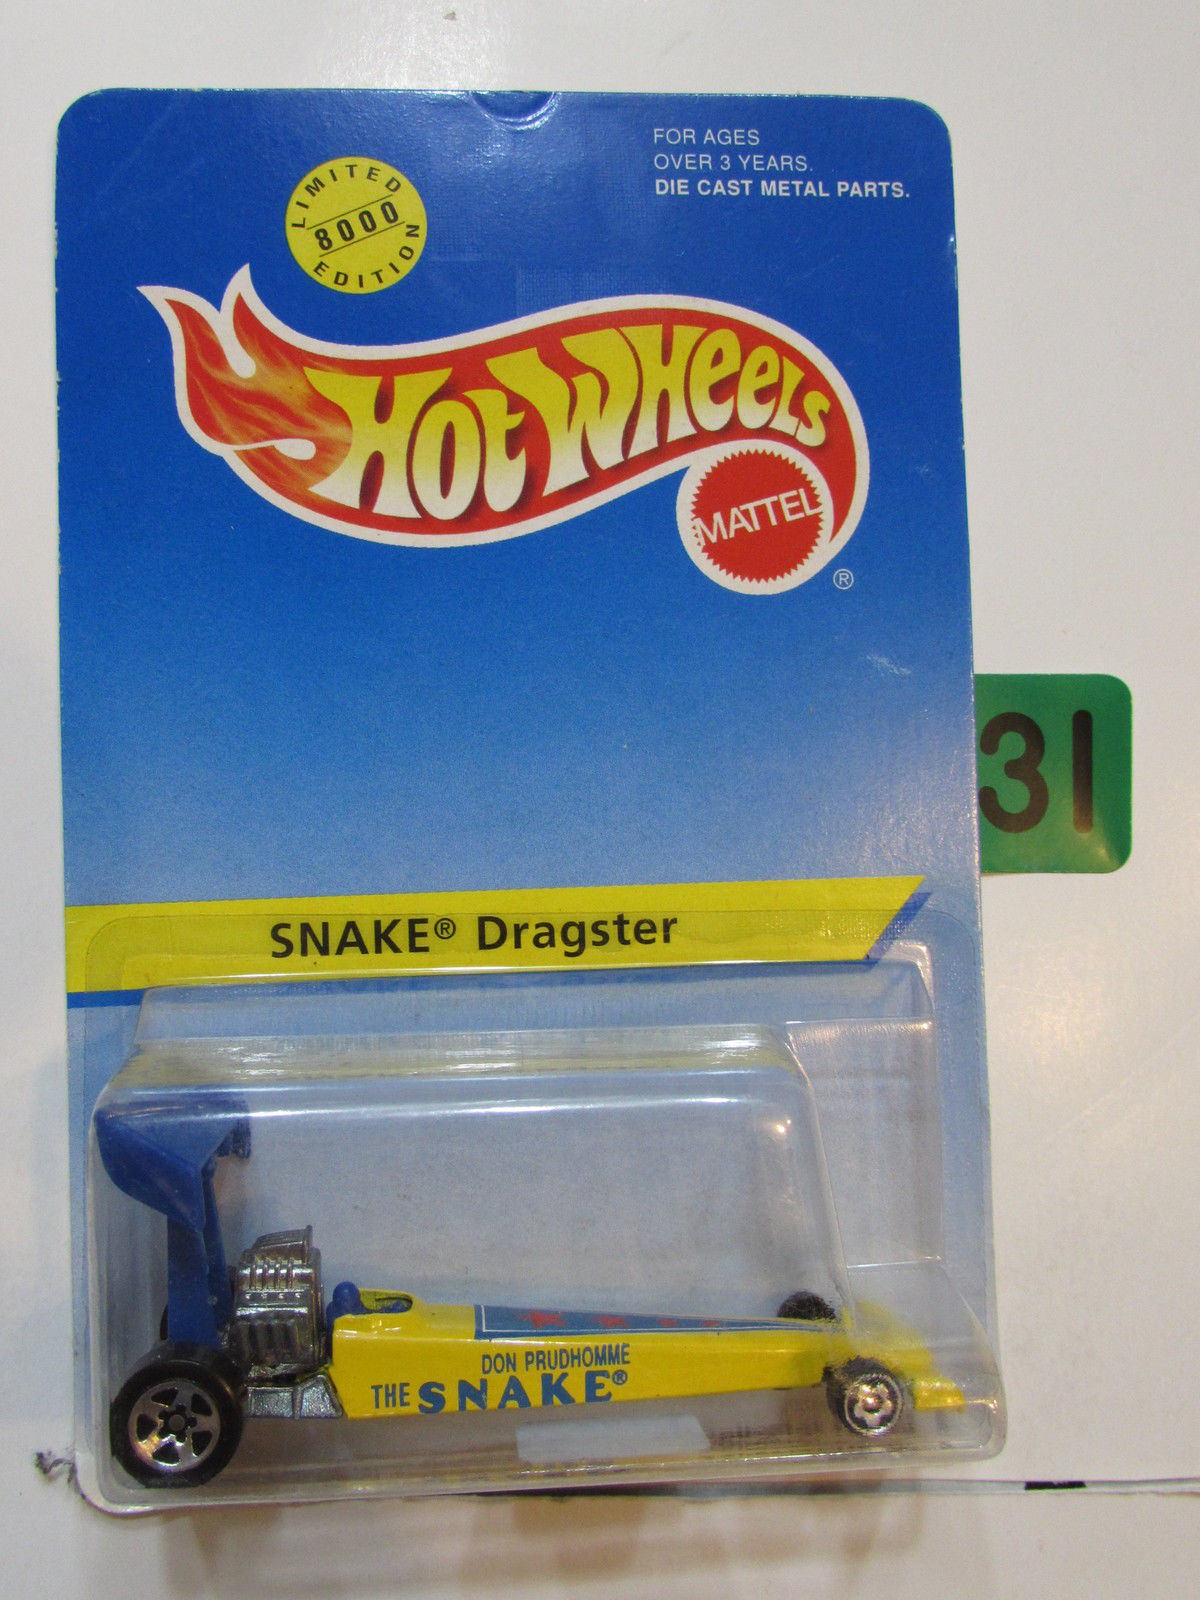 HOT WHEELS 1995 LIMITED 8000 EDITION SNAKE DRAGSTER #91 YELLOW